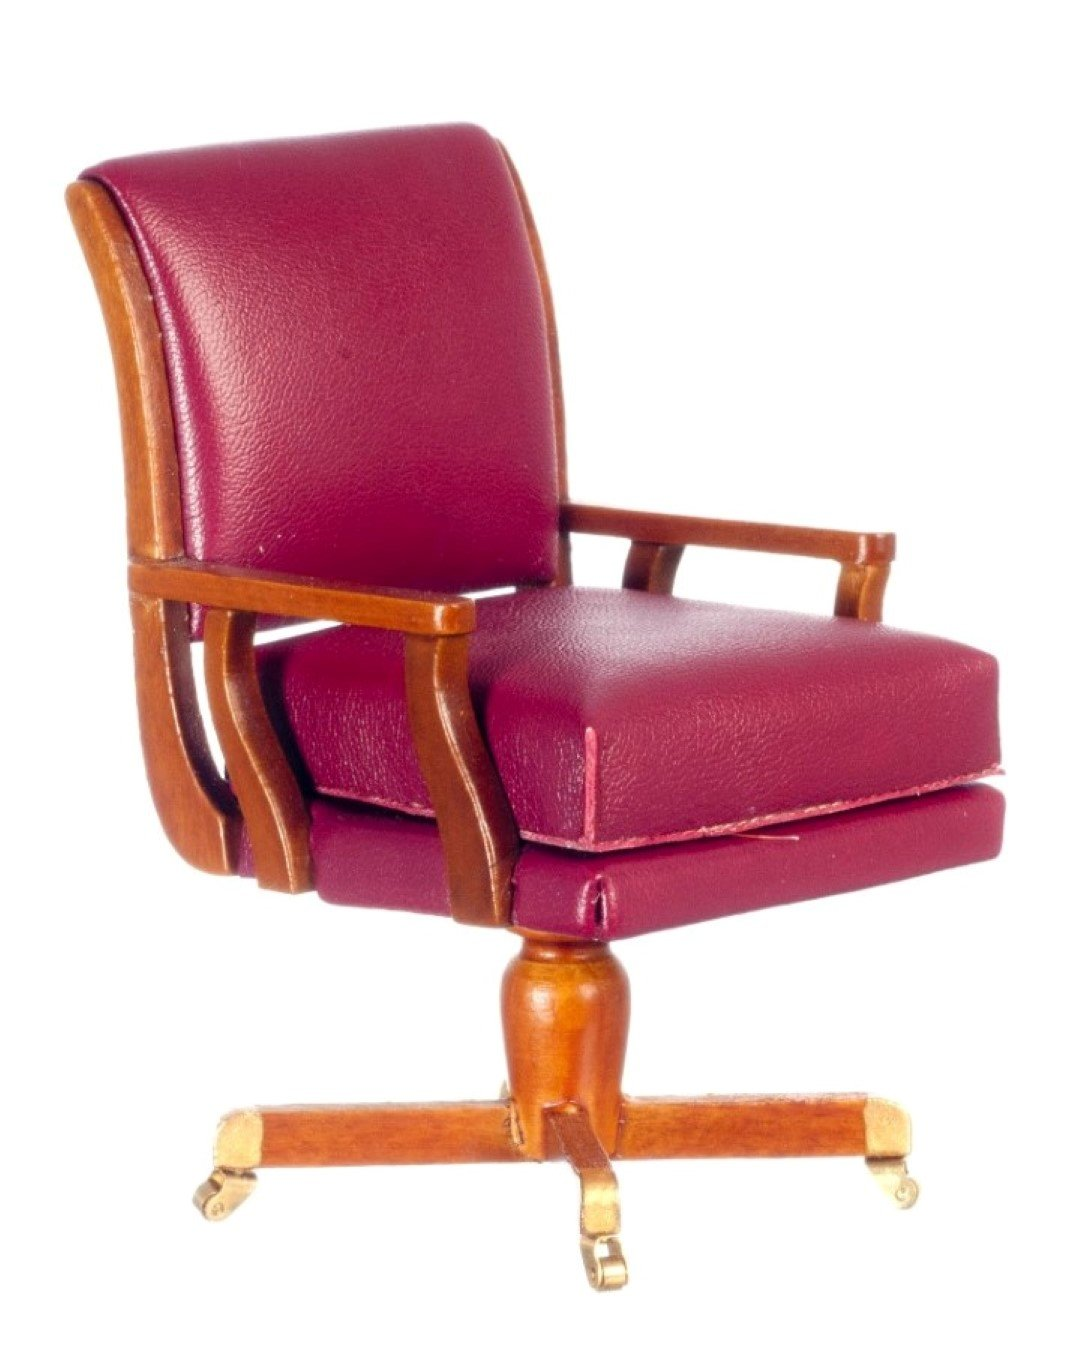 Melody Jane Dollhouse Jimmy Carter Red Oval Office Desk Chair Miniature Study Furniture by Melody Jane Doll Houses